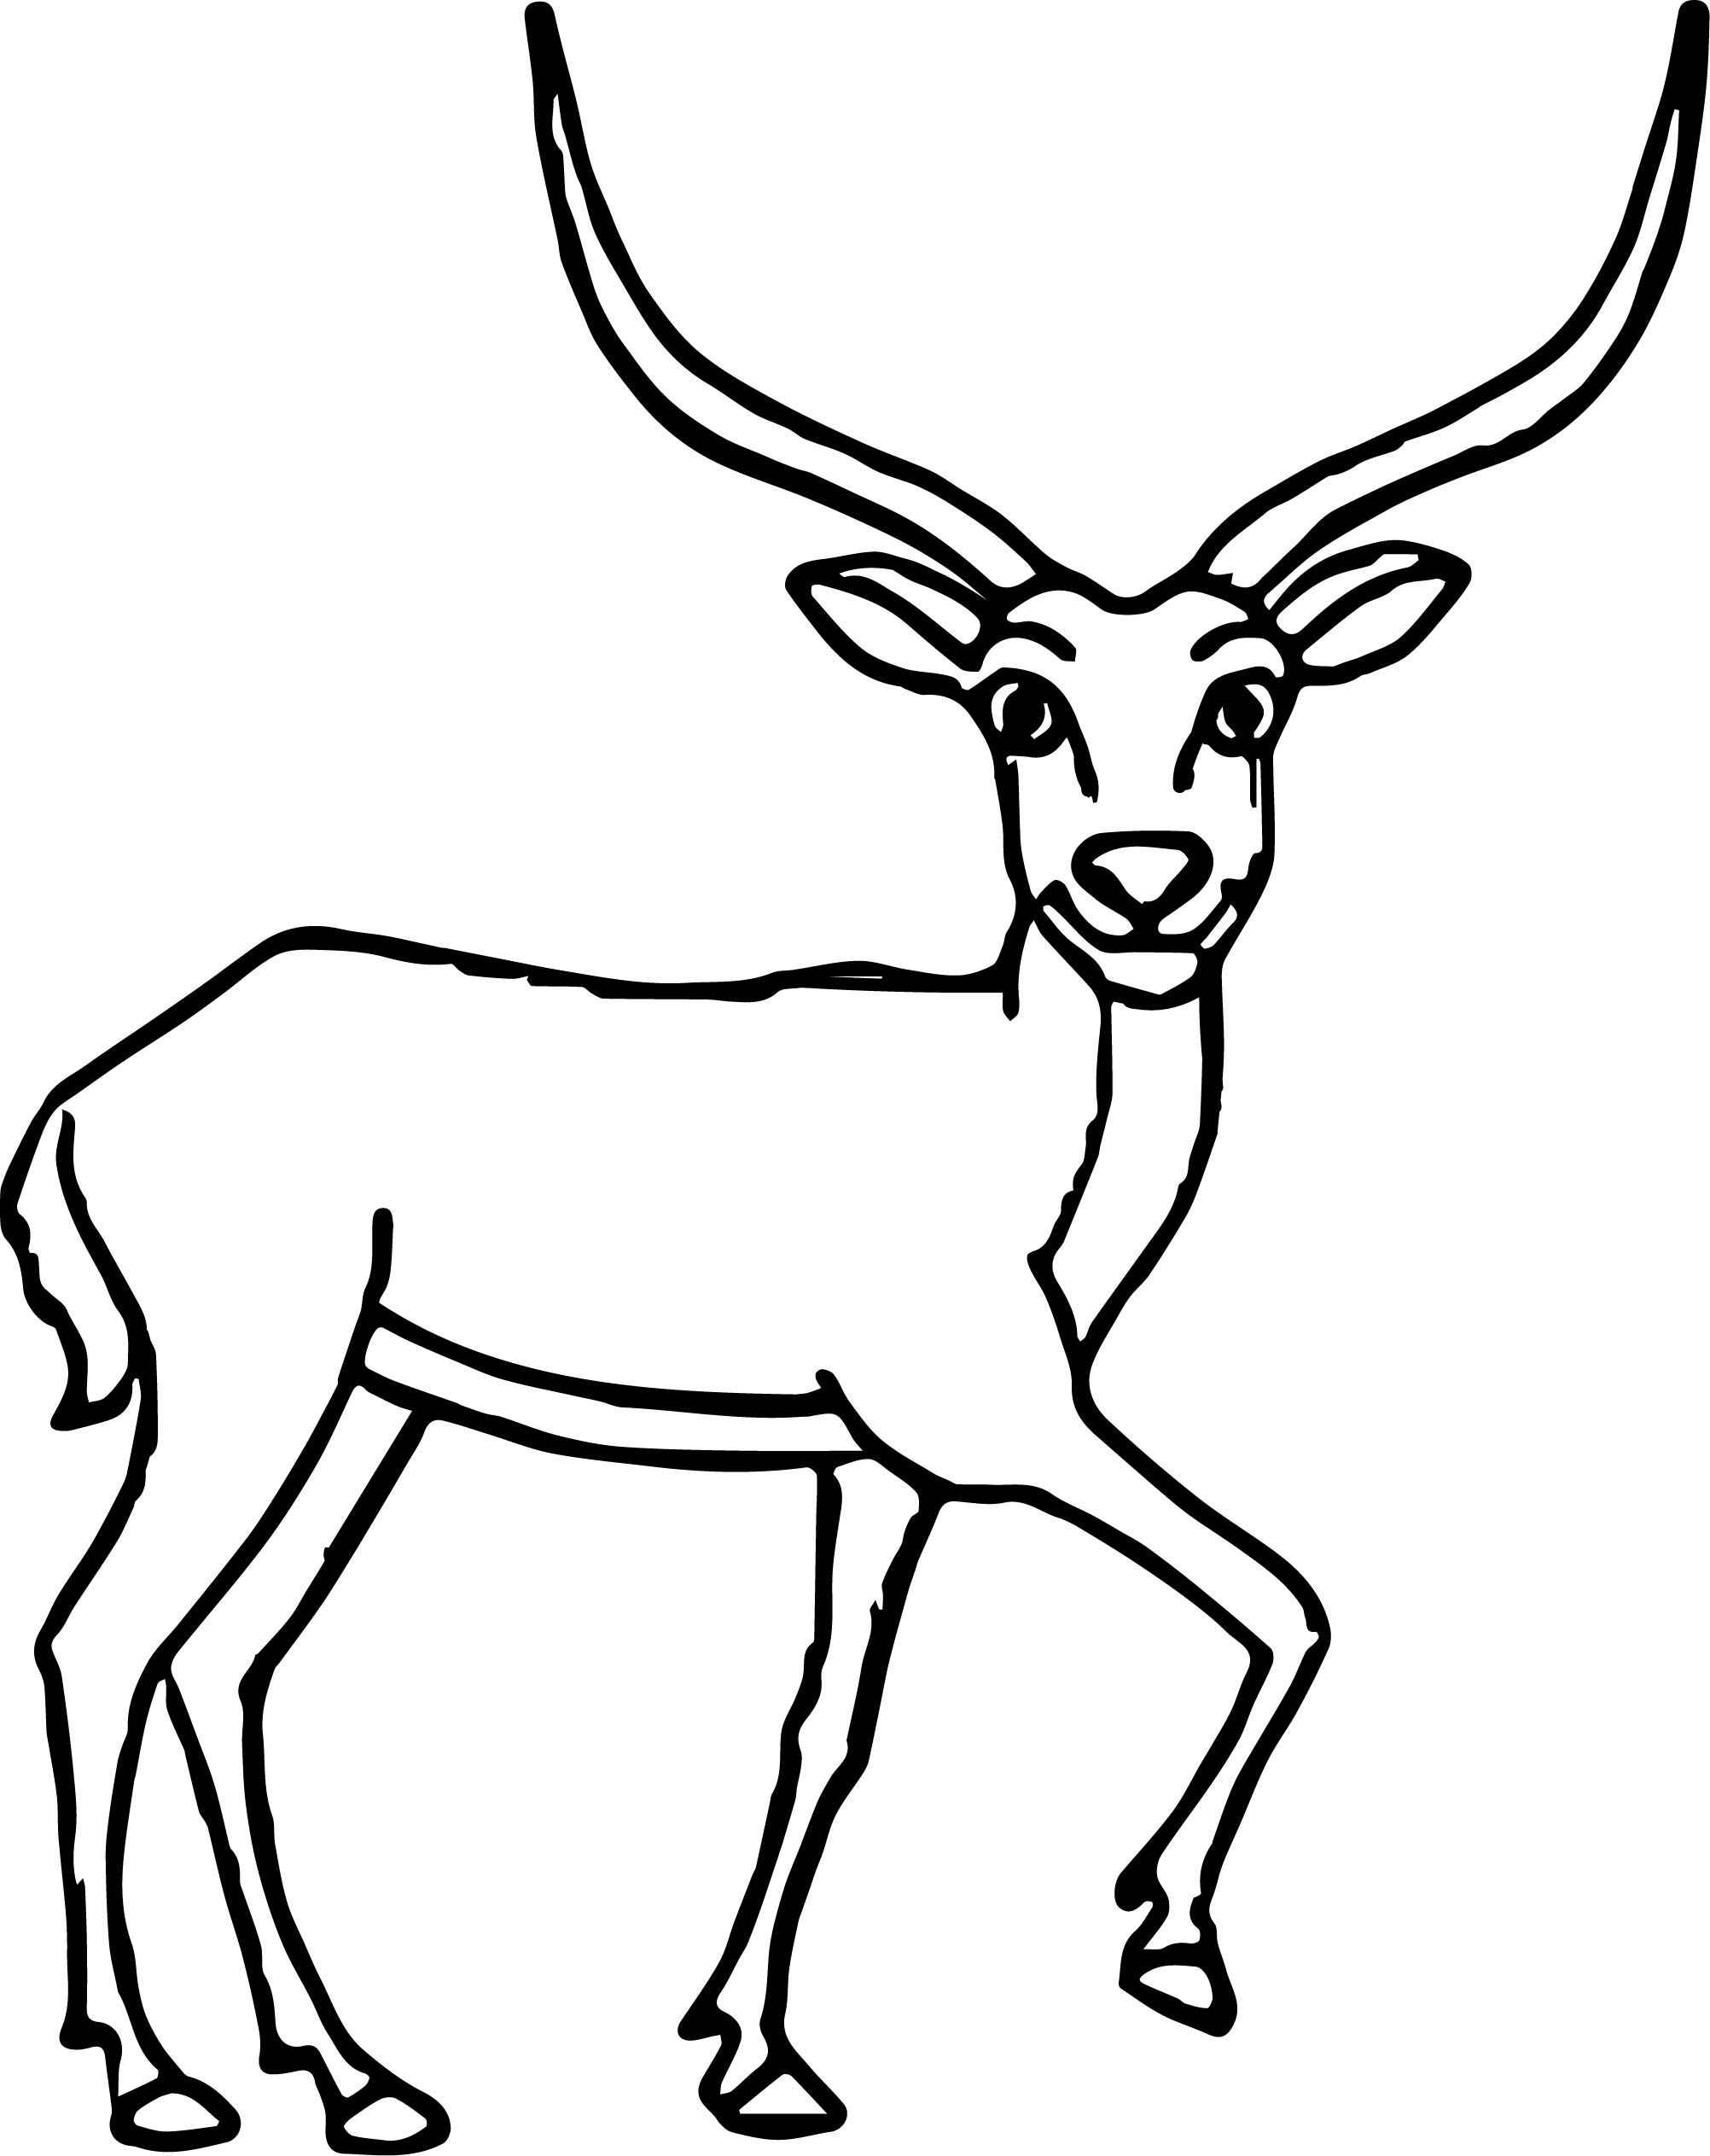 Looking Antelope Coloring Page Wecoloringpage